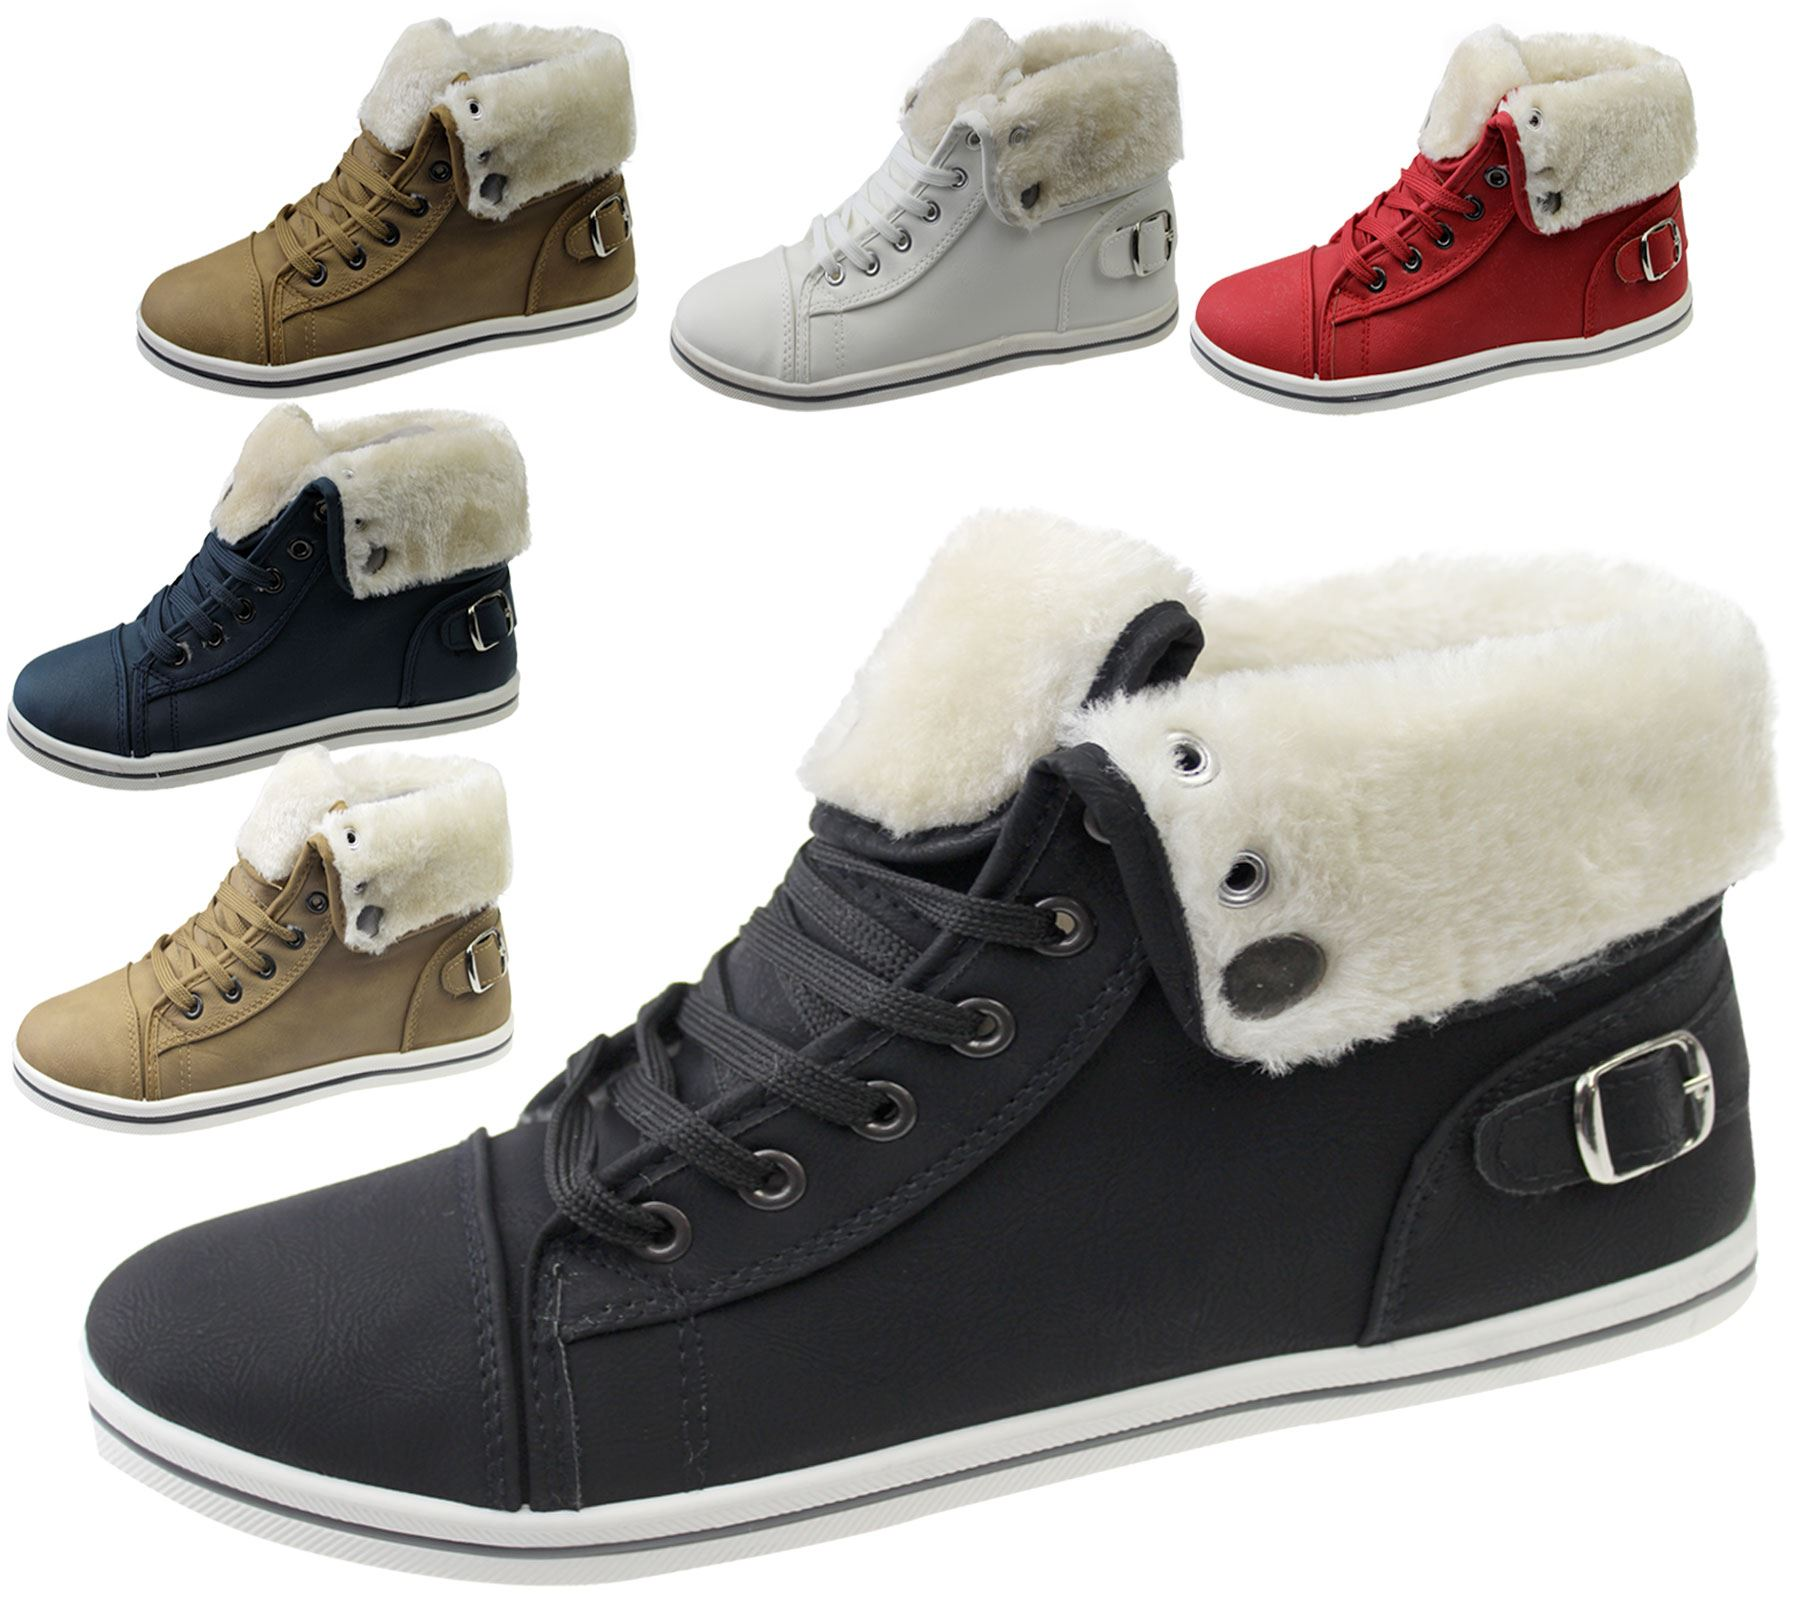 Girls-Boots-Womens-Warm-Lined-High-Top-Ankle-Trainer-Ladies-Winter-Shoes-Size miniatura 64